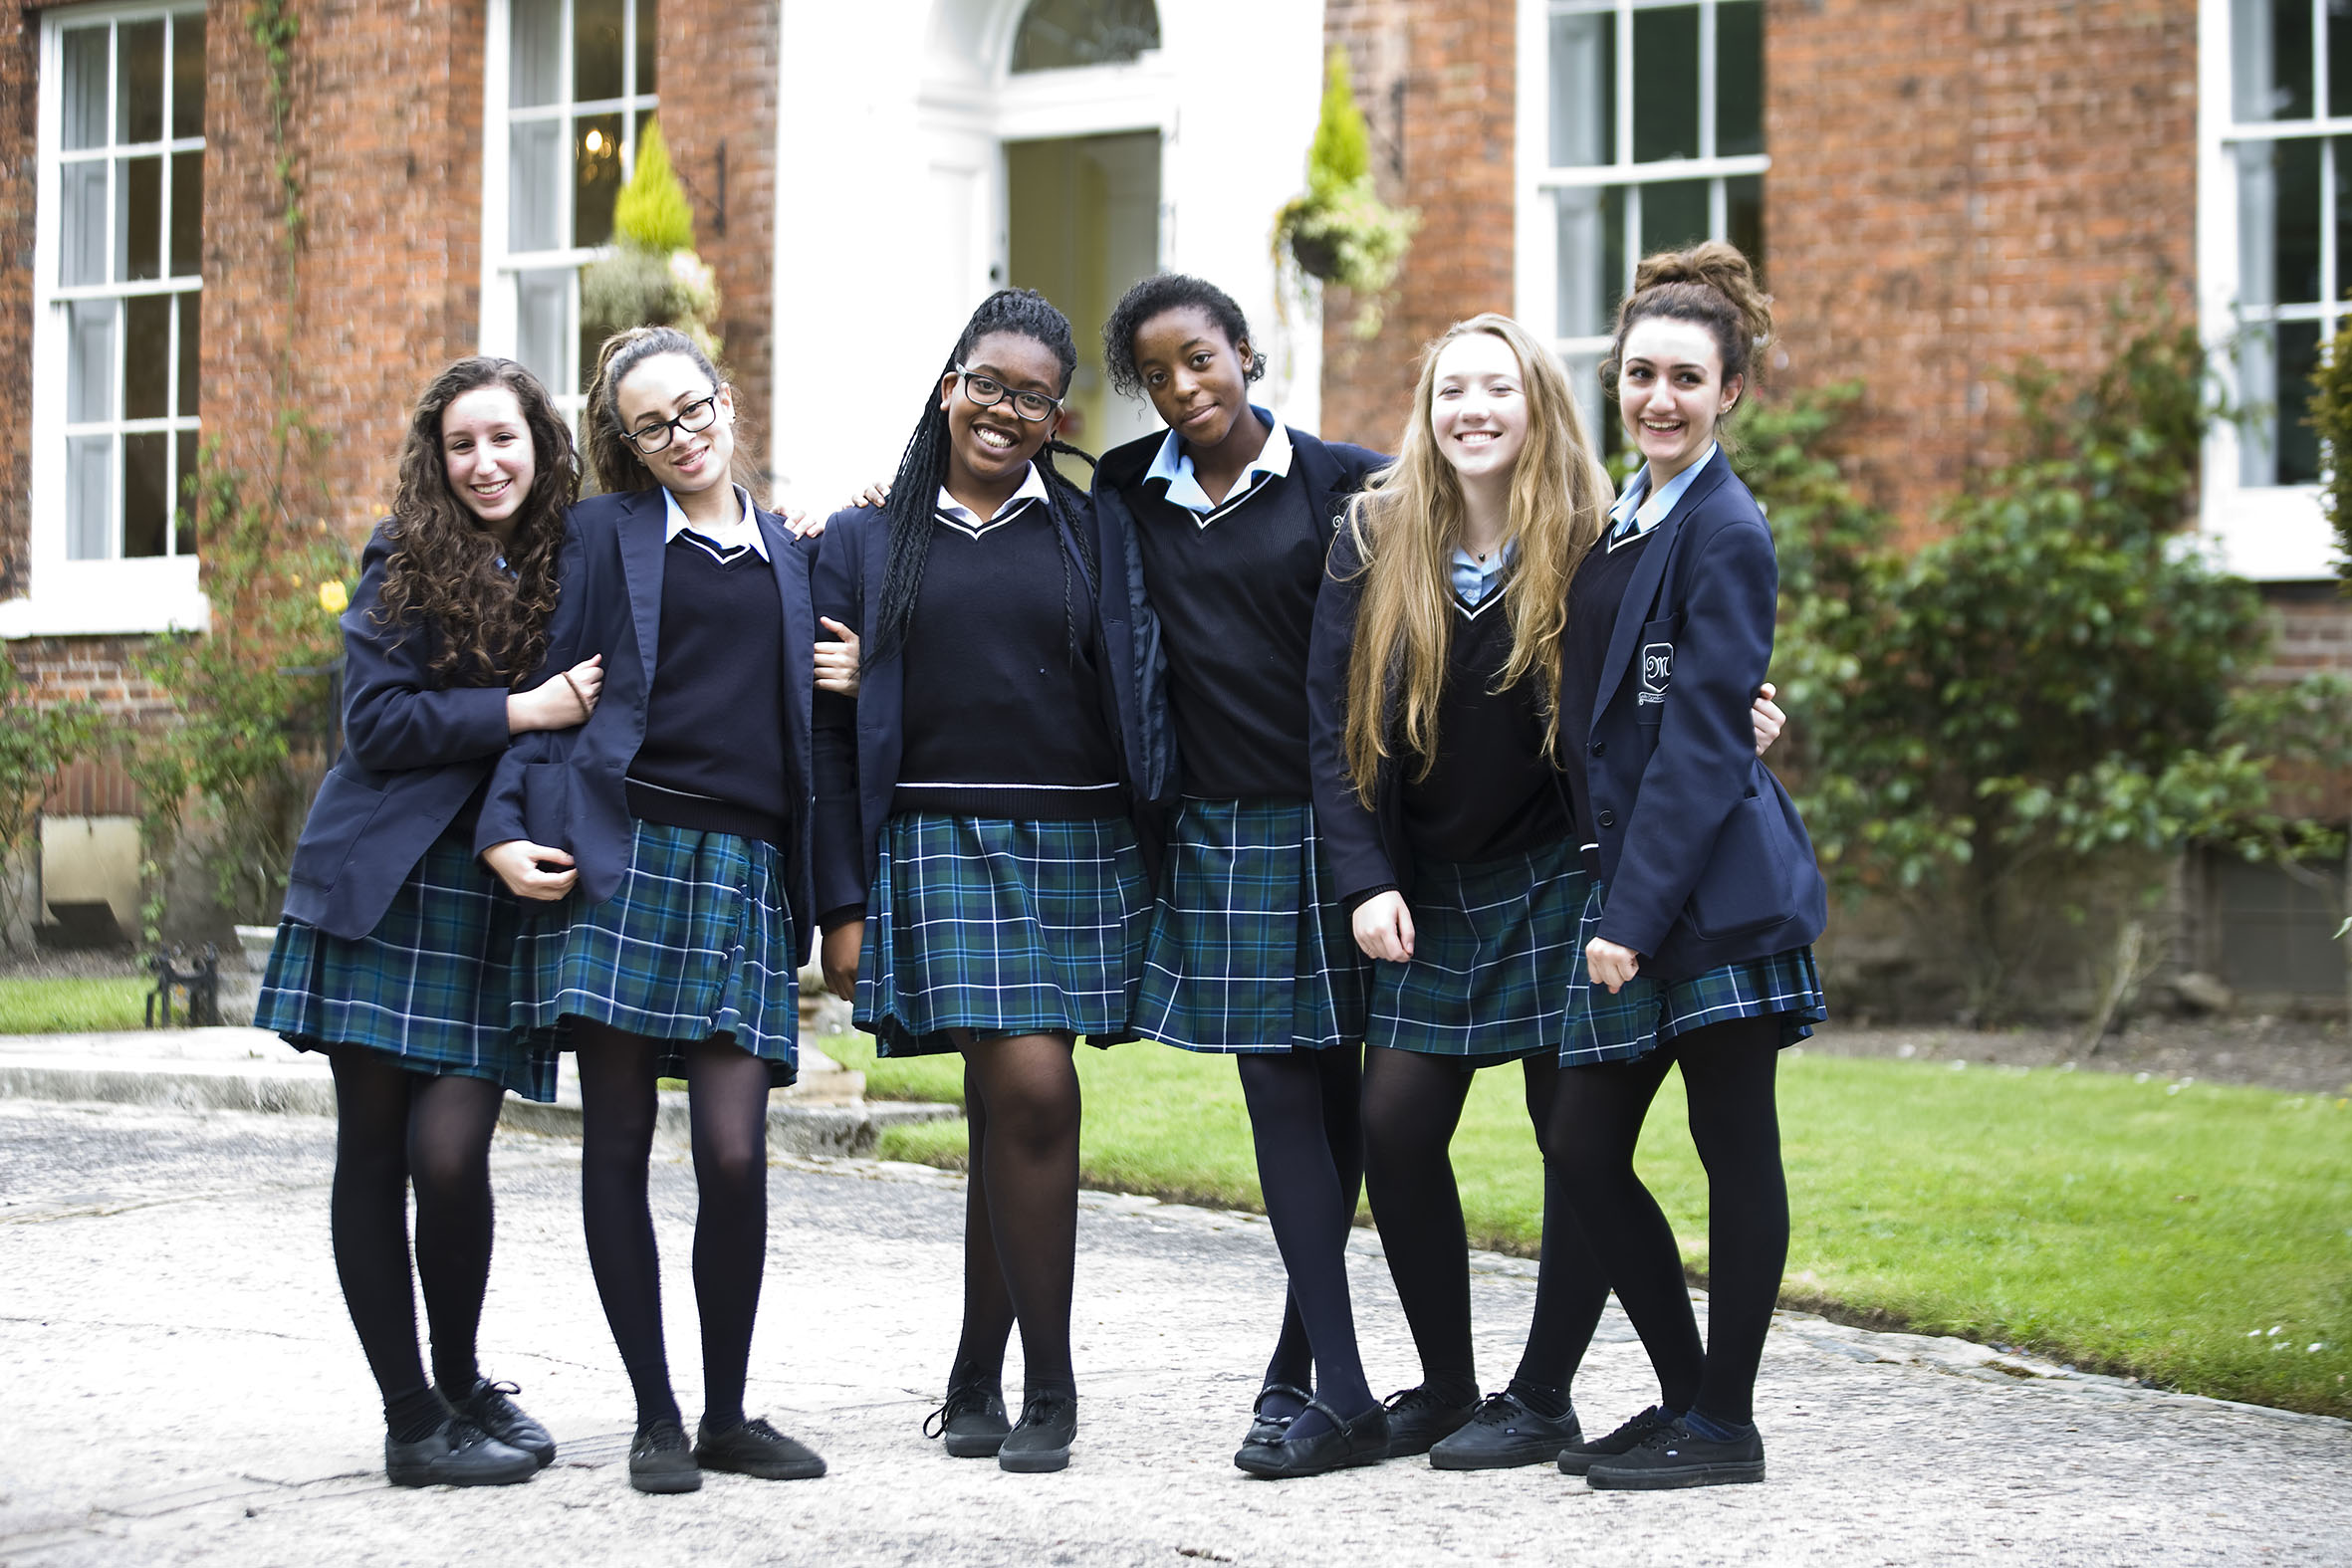 Things To Look Out For When Purchasing School Uniforms